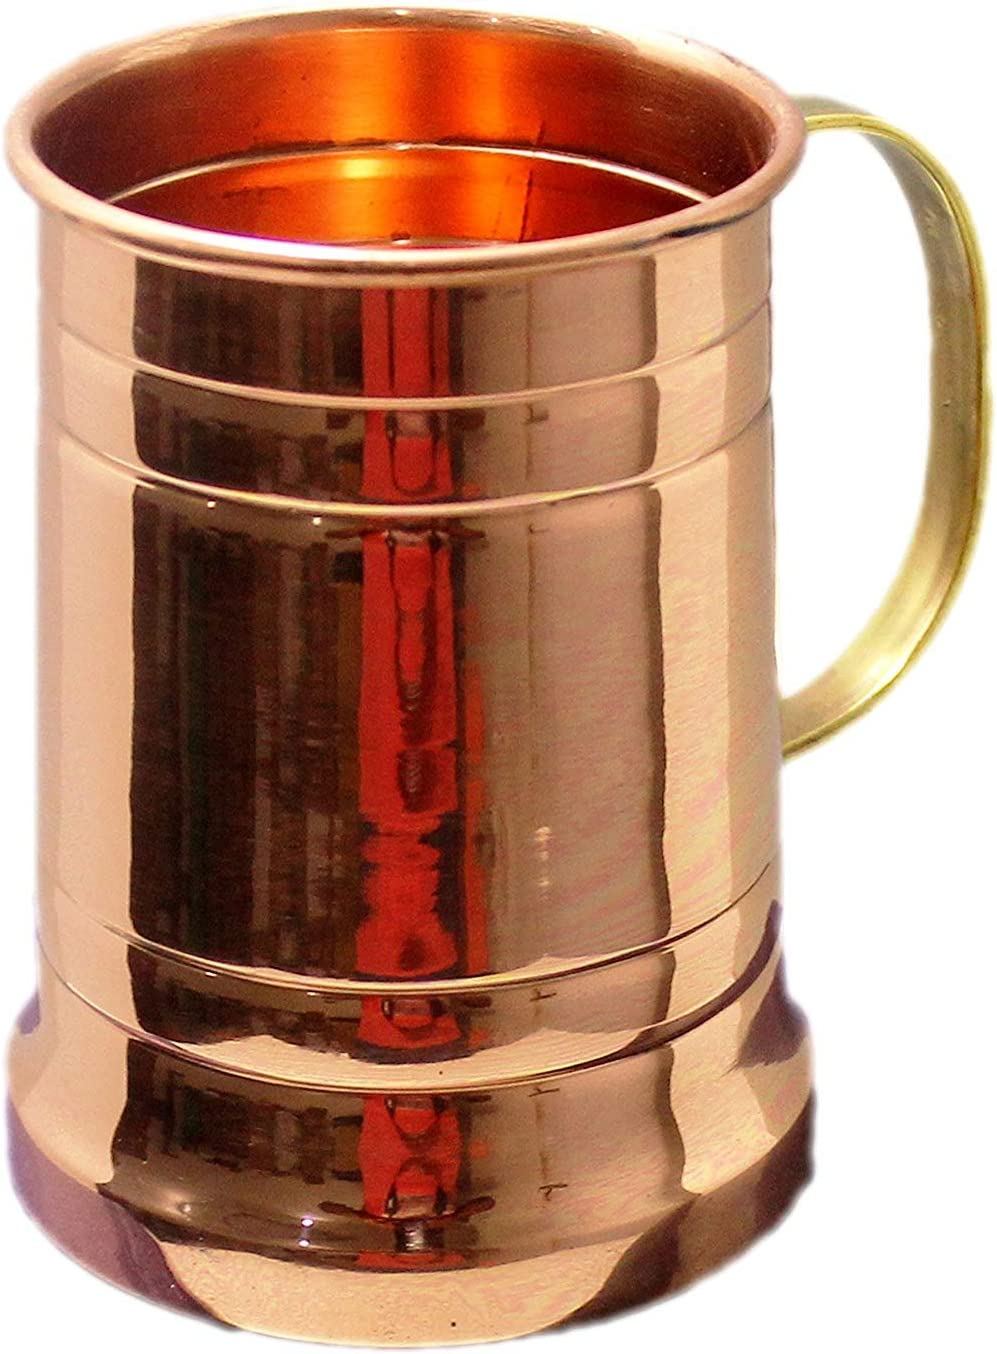 New Orleans Mall PARIJAT HANDICRAFT Large Superior Moscow Mule Copper Drink Mugs: Make Any